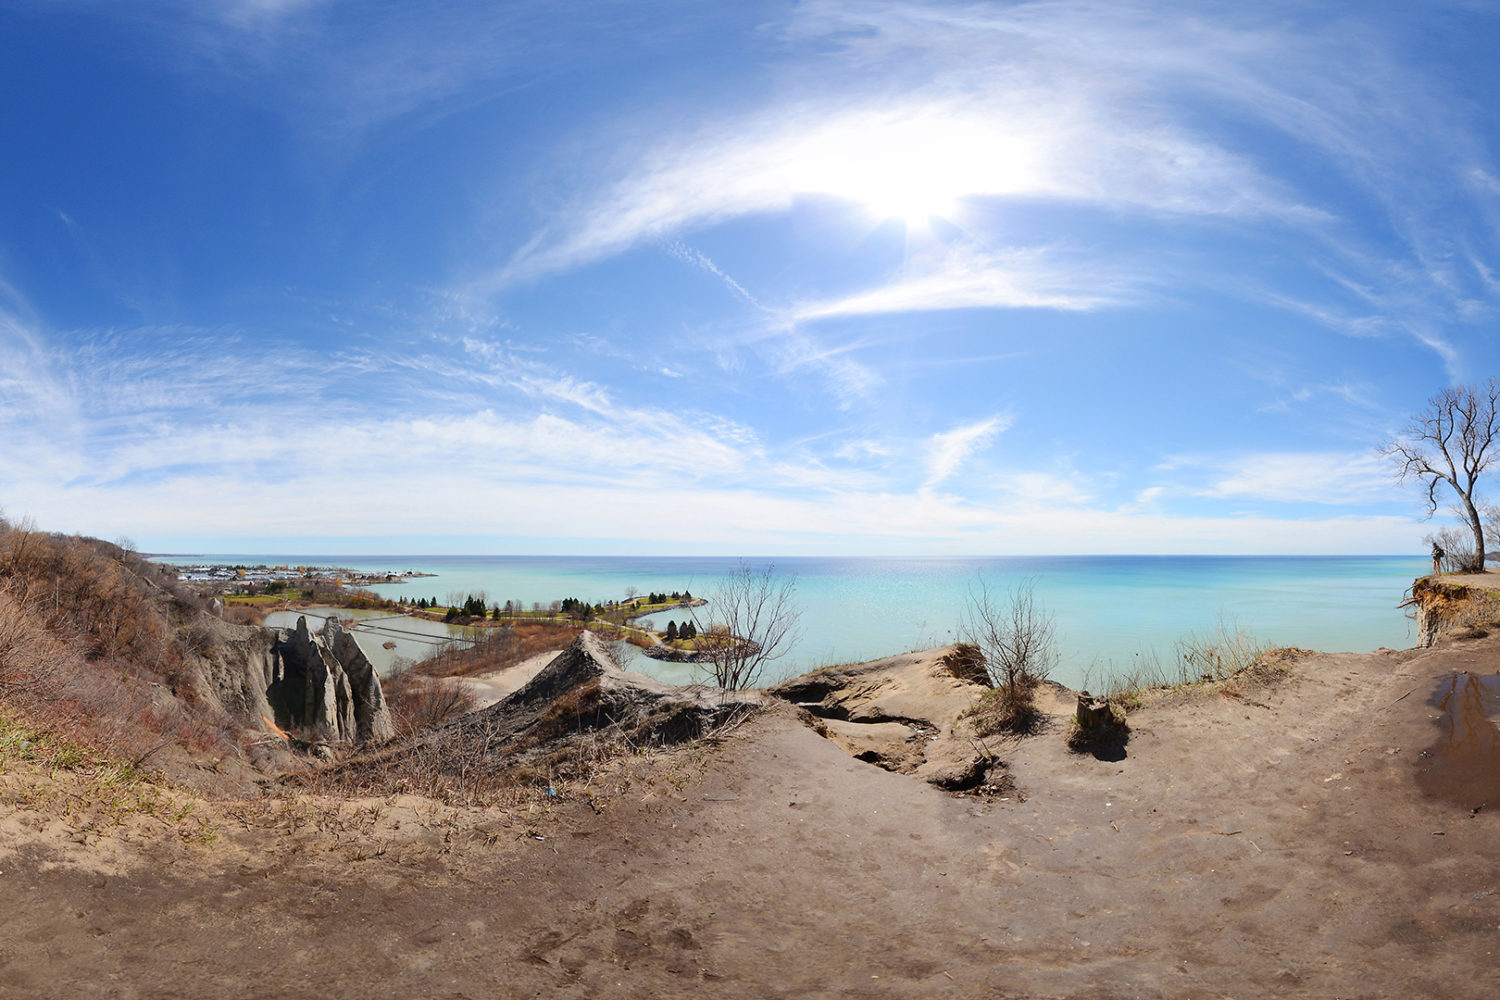 5 common mistakes 360° photographers make